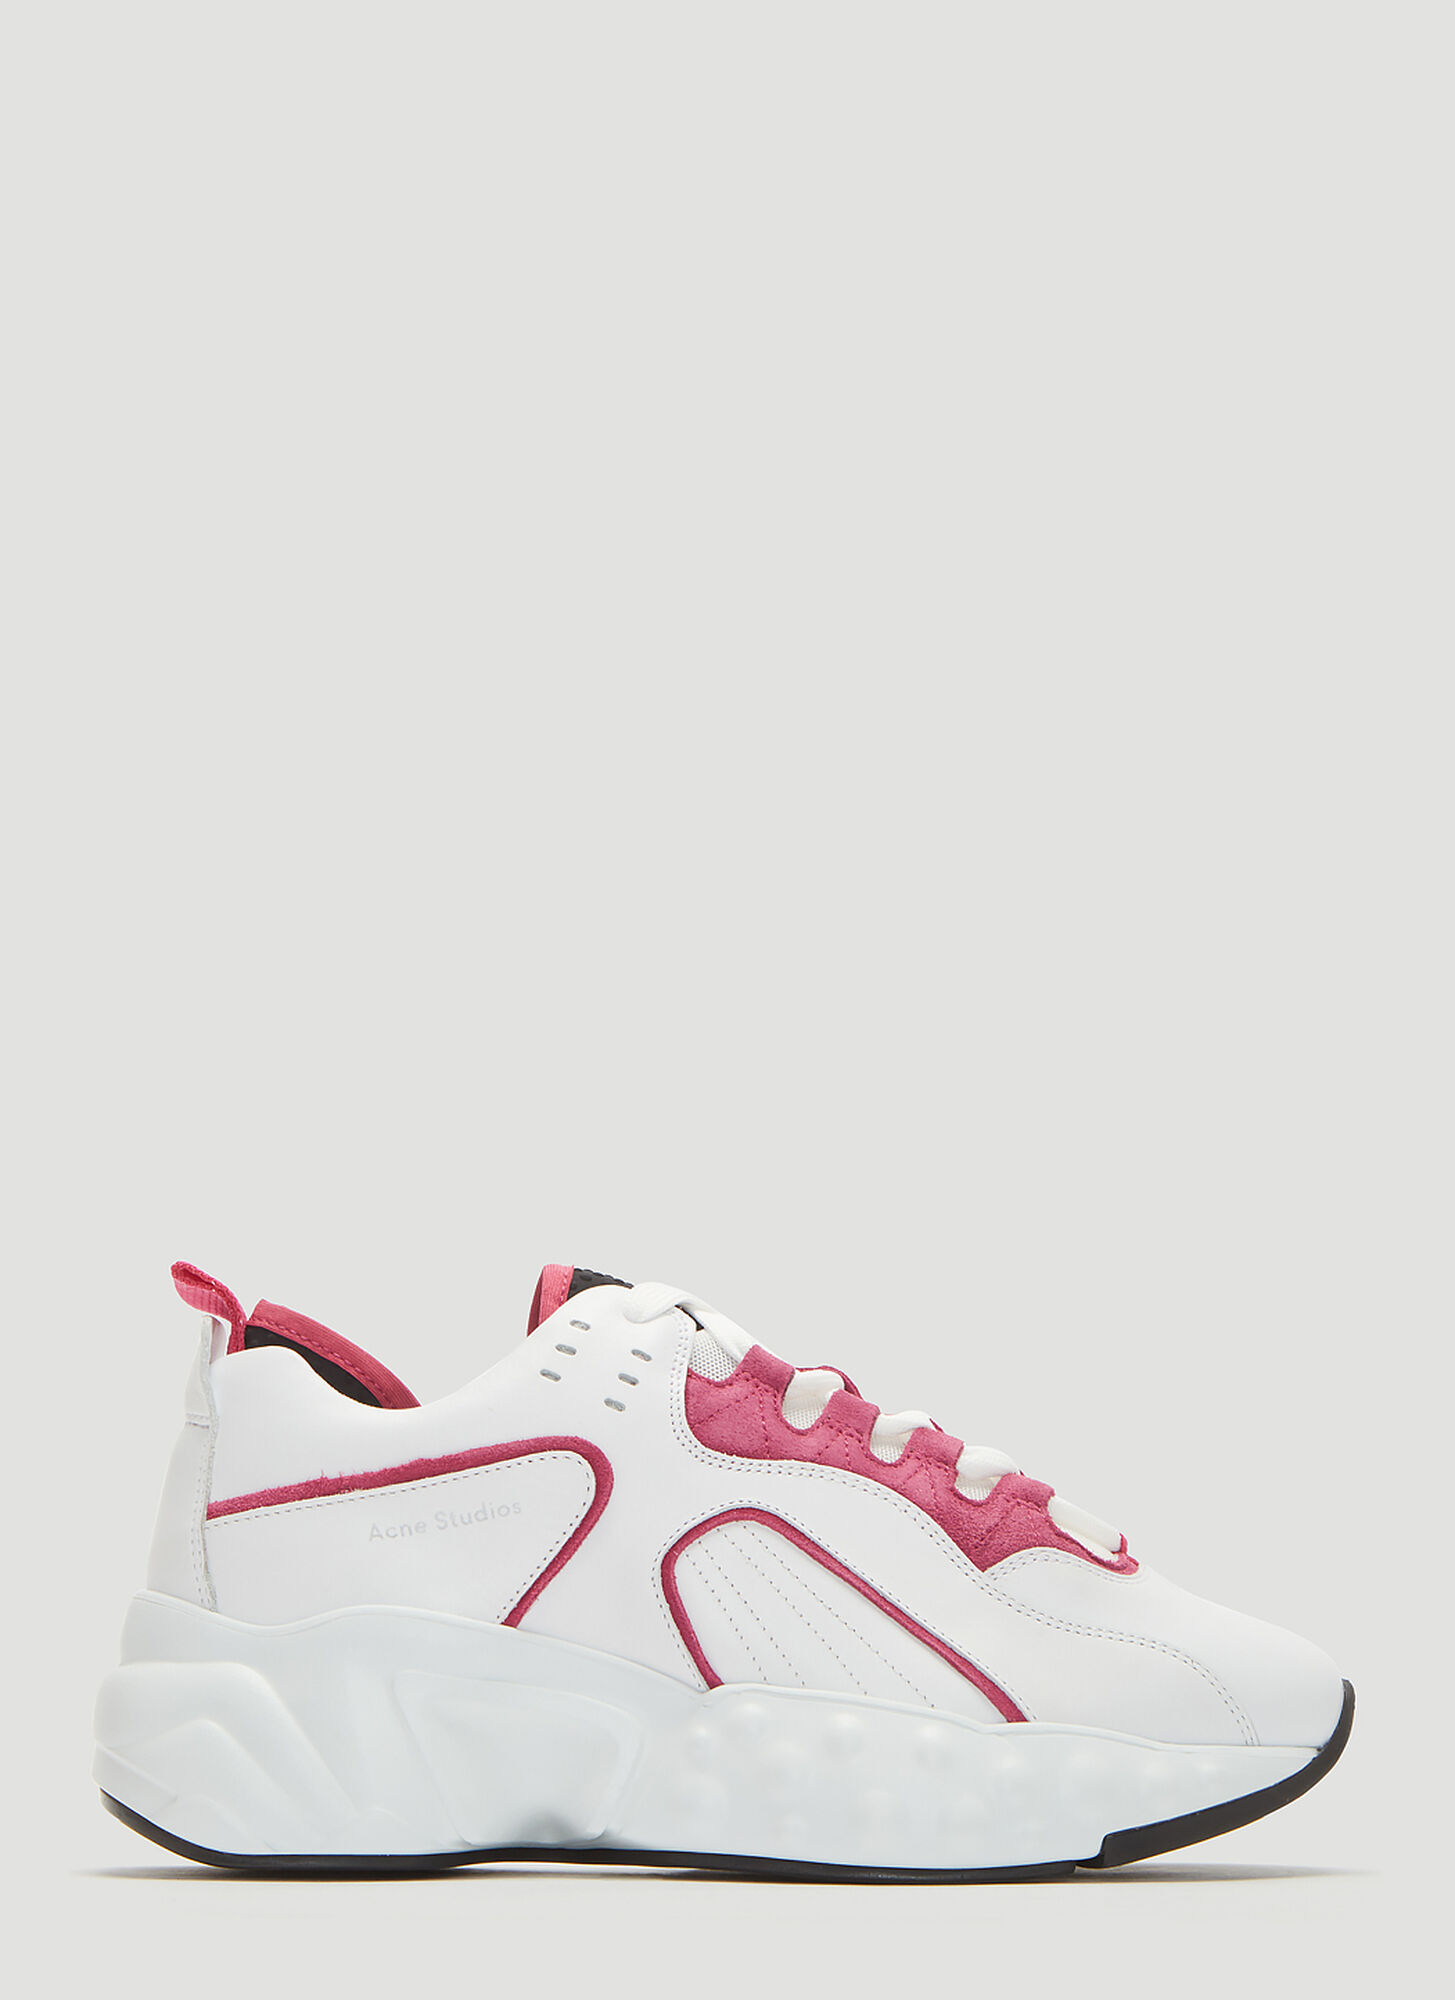 Acne Studios Manhattan Technical Leather Sneakers in White